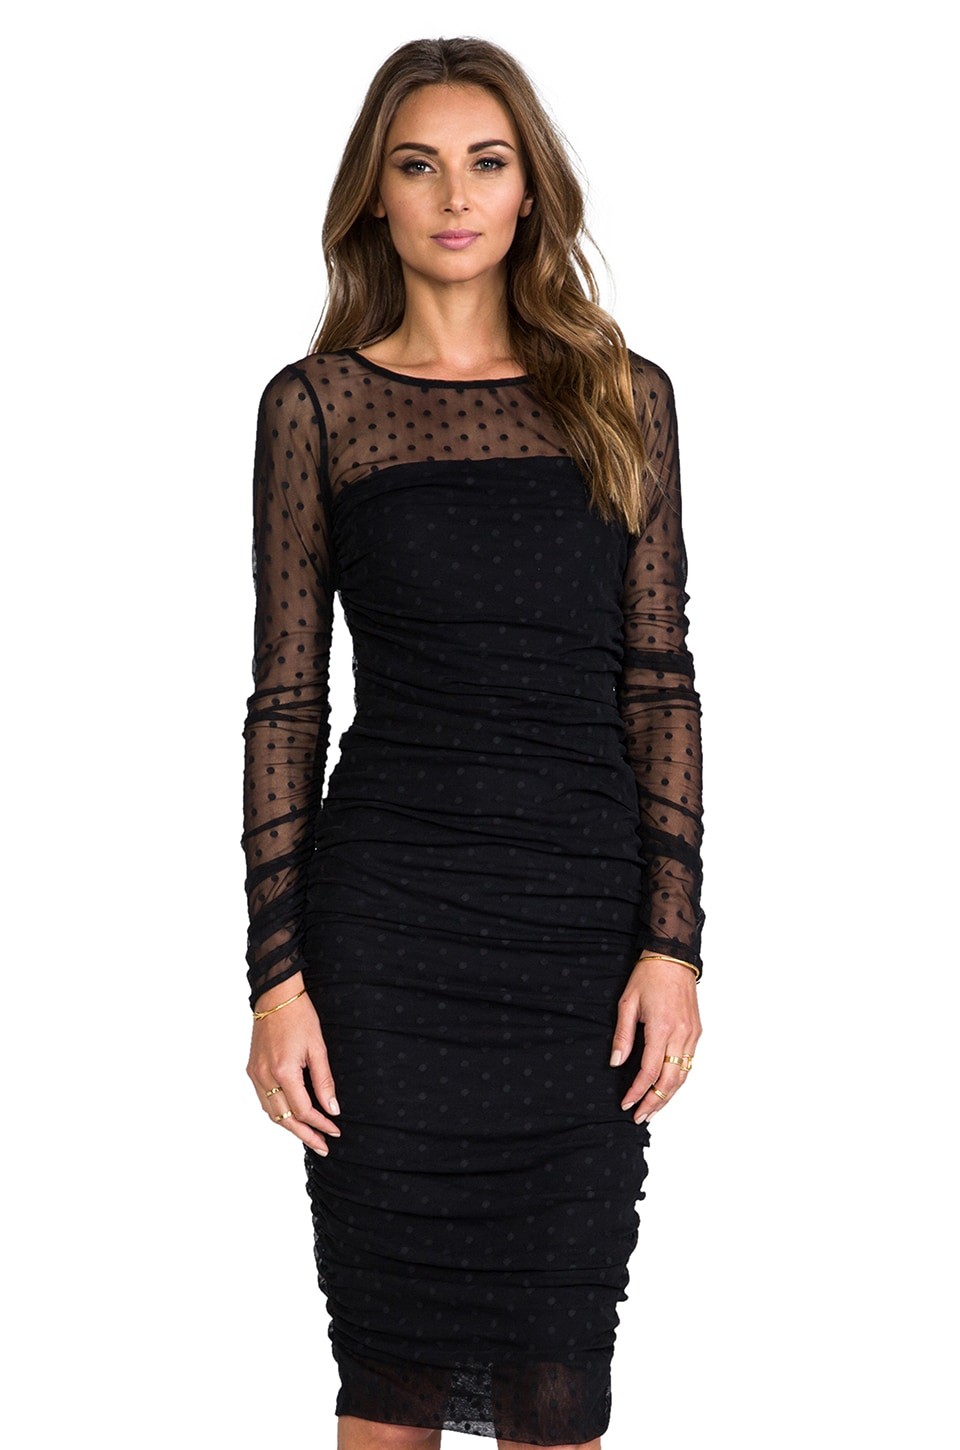 Paper Crown by Lauren Conrad Sophia Dress in Black Polka